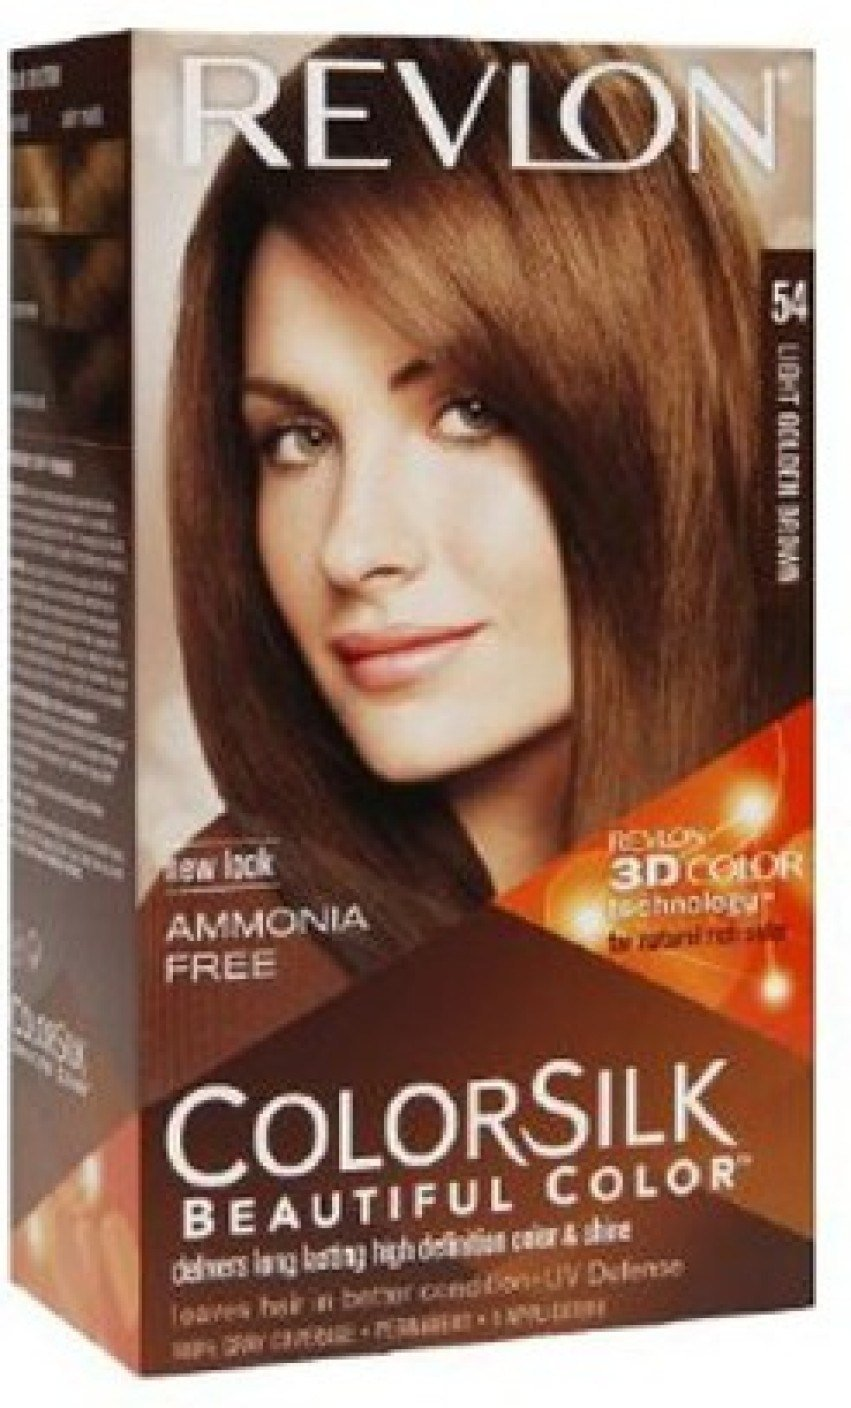 The Best Revlon Colorsilk With 3D Technology Hair Color Price In Pictures